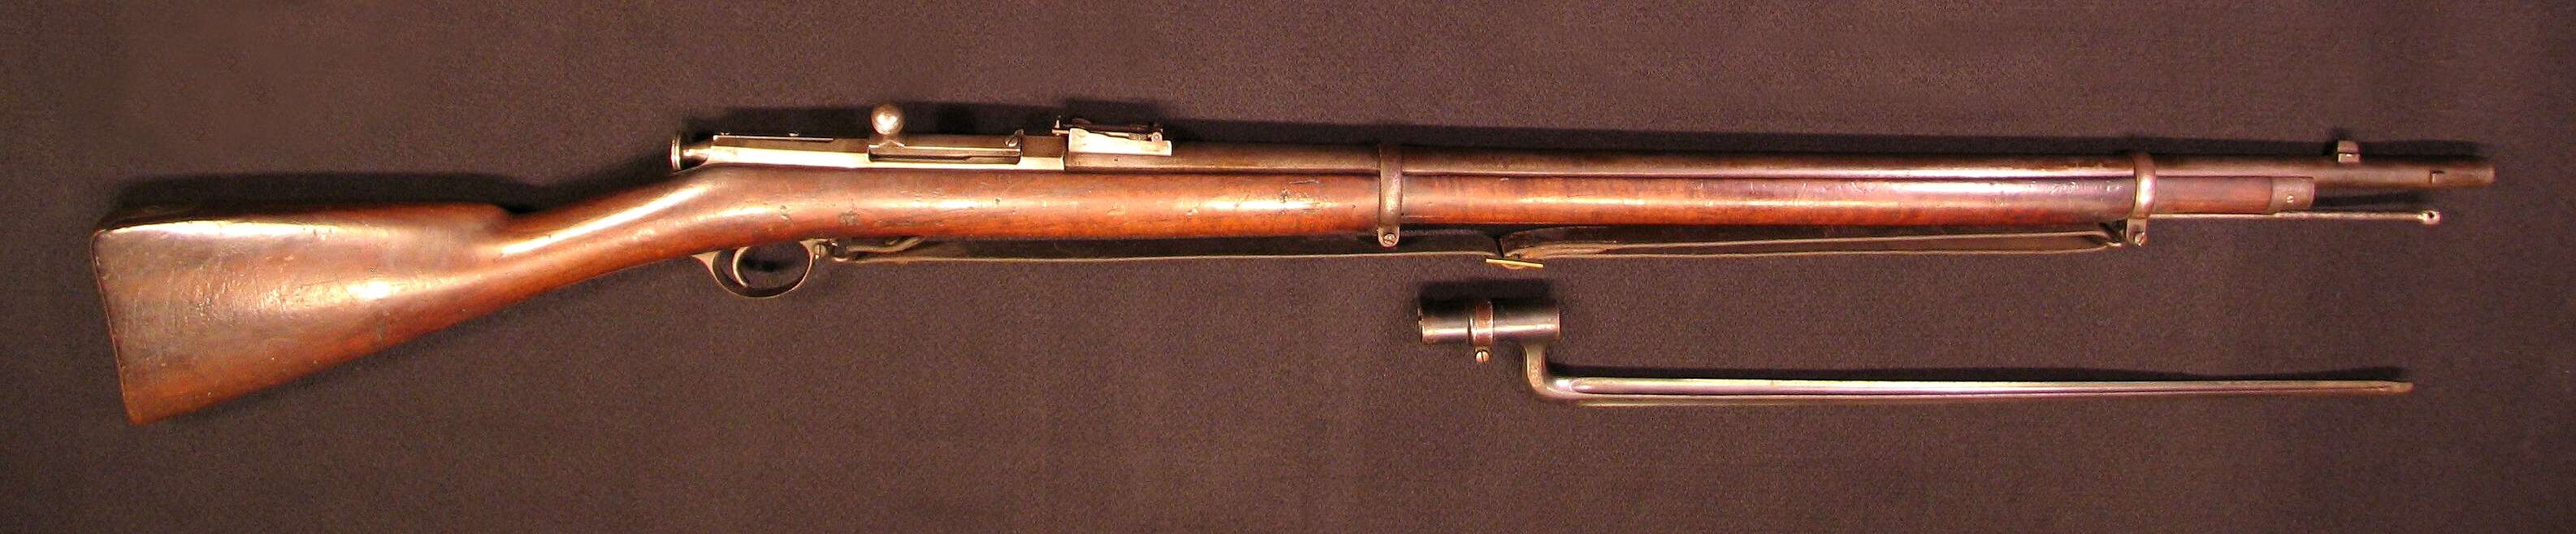 Click image for larger version.  Name:Russian M1870 Berdan II Infantry Rifle - 07R.jpg Views:5 Size:1.77 MB ID:2309546